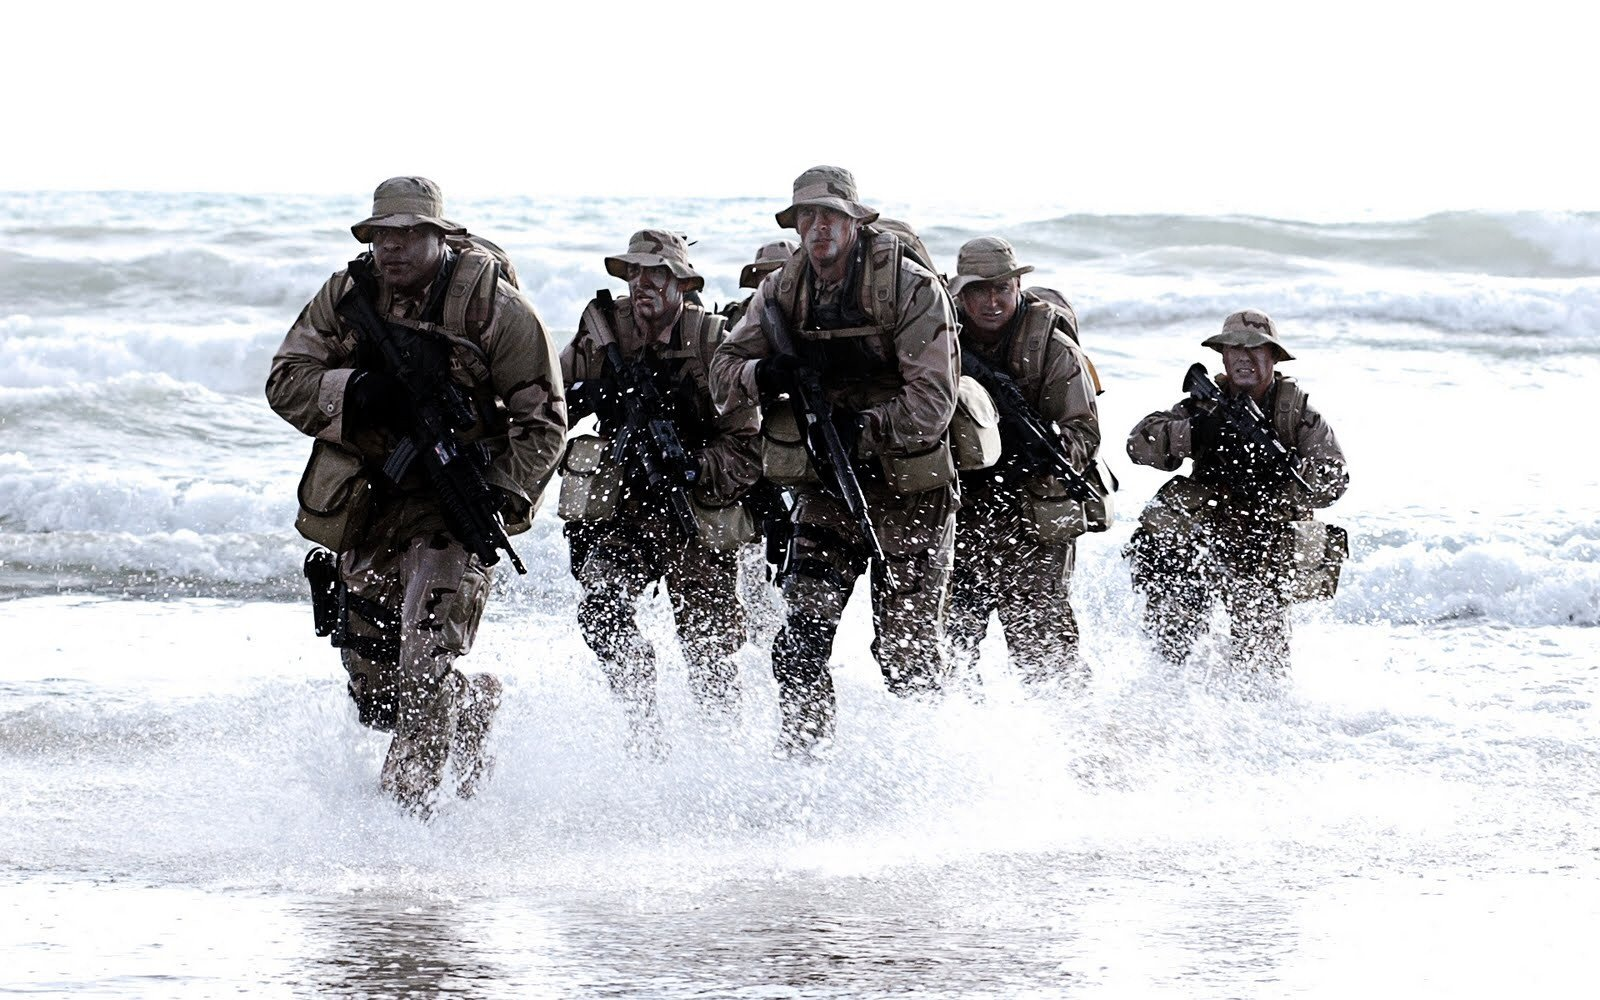 Military HD Wallpapers 1080p